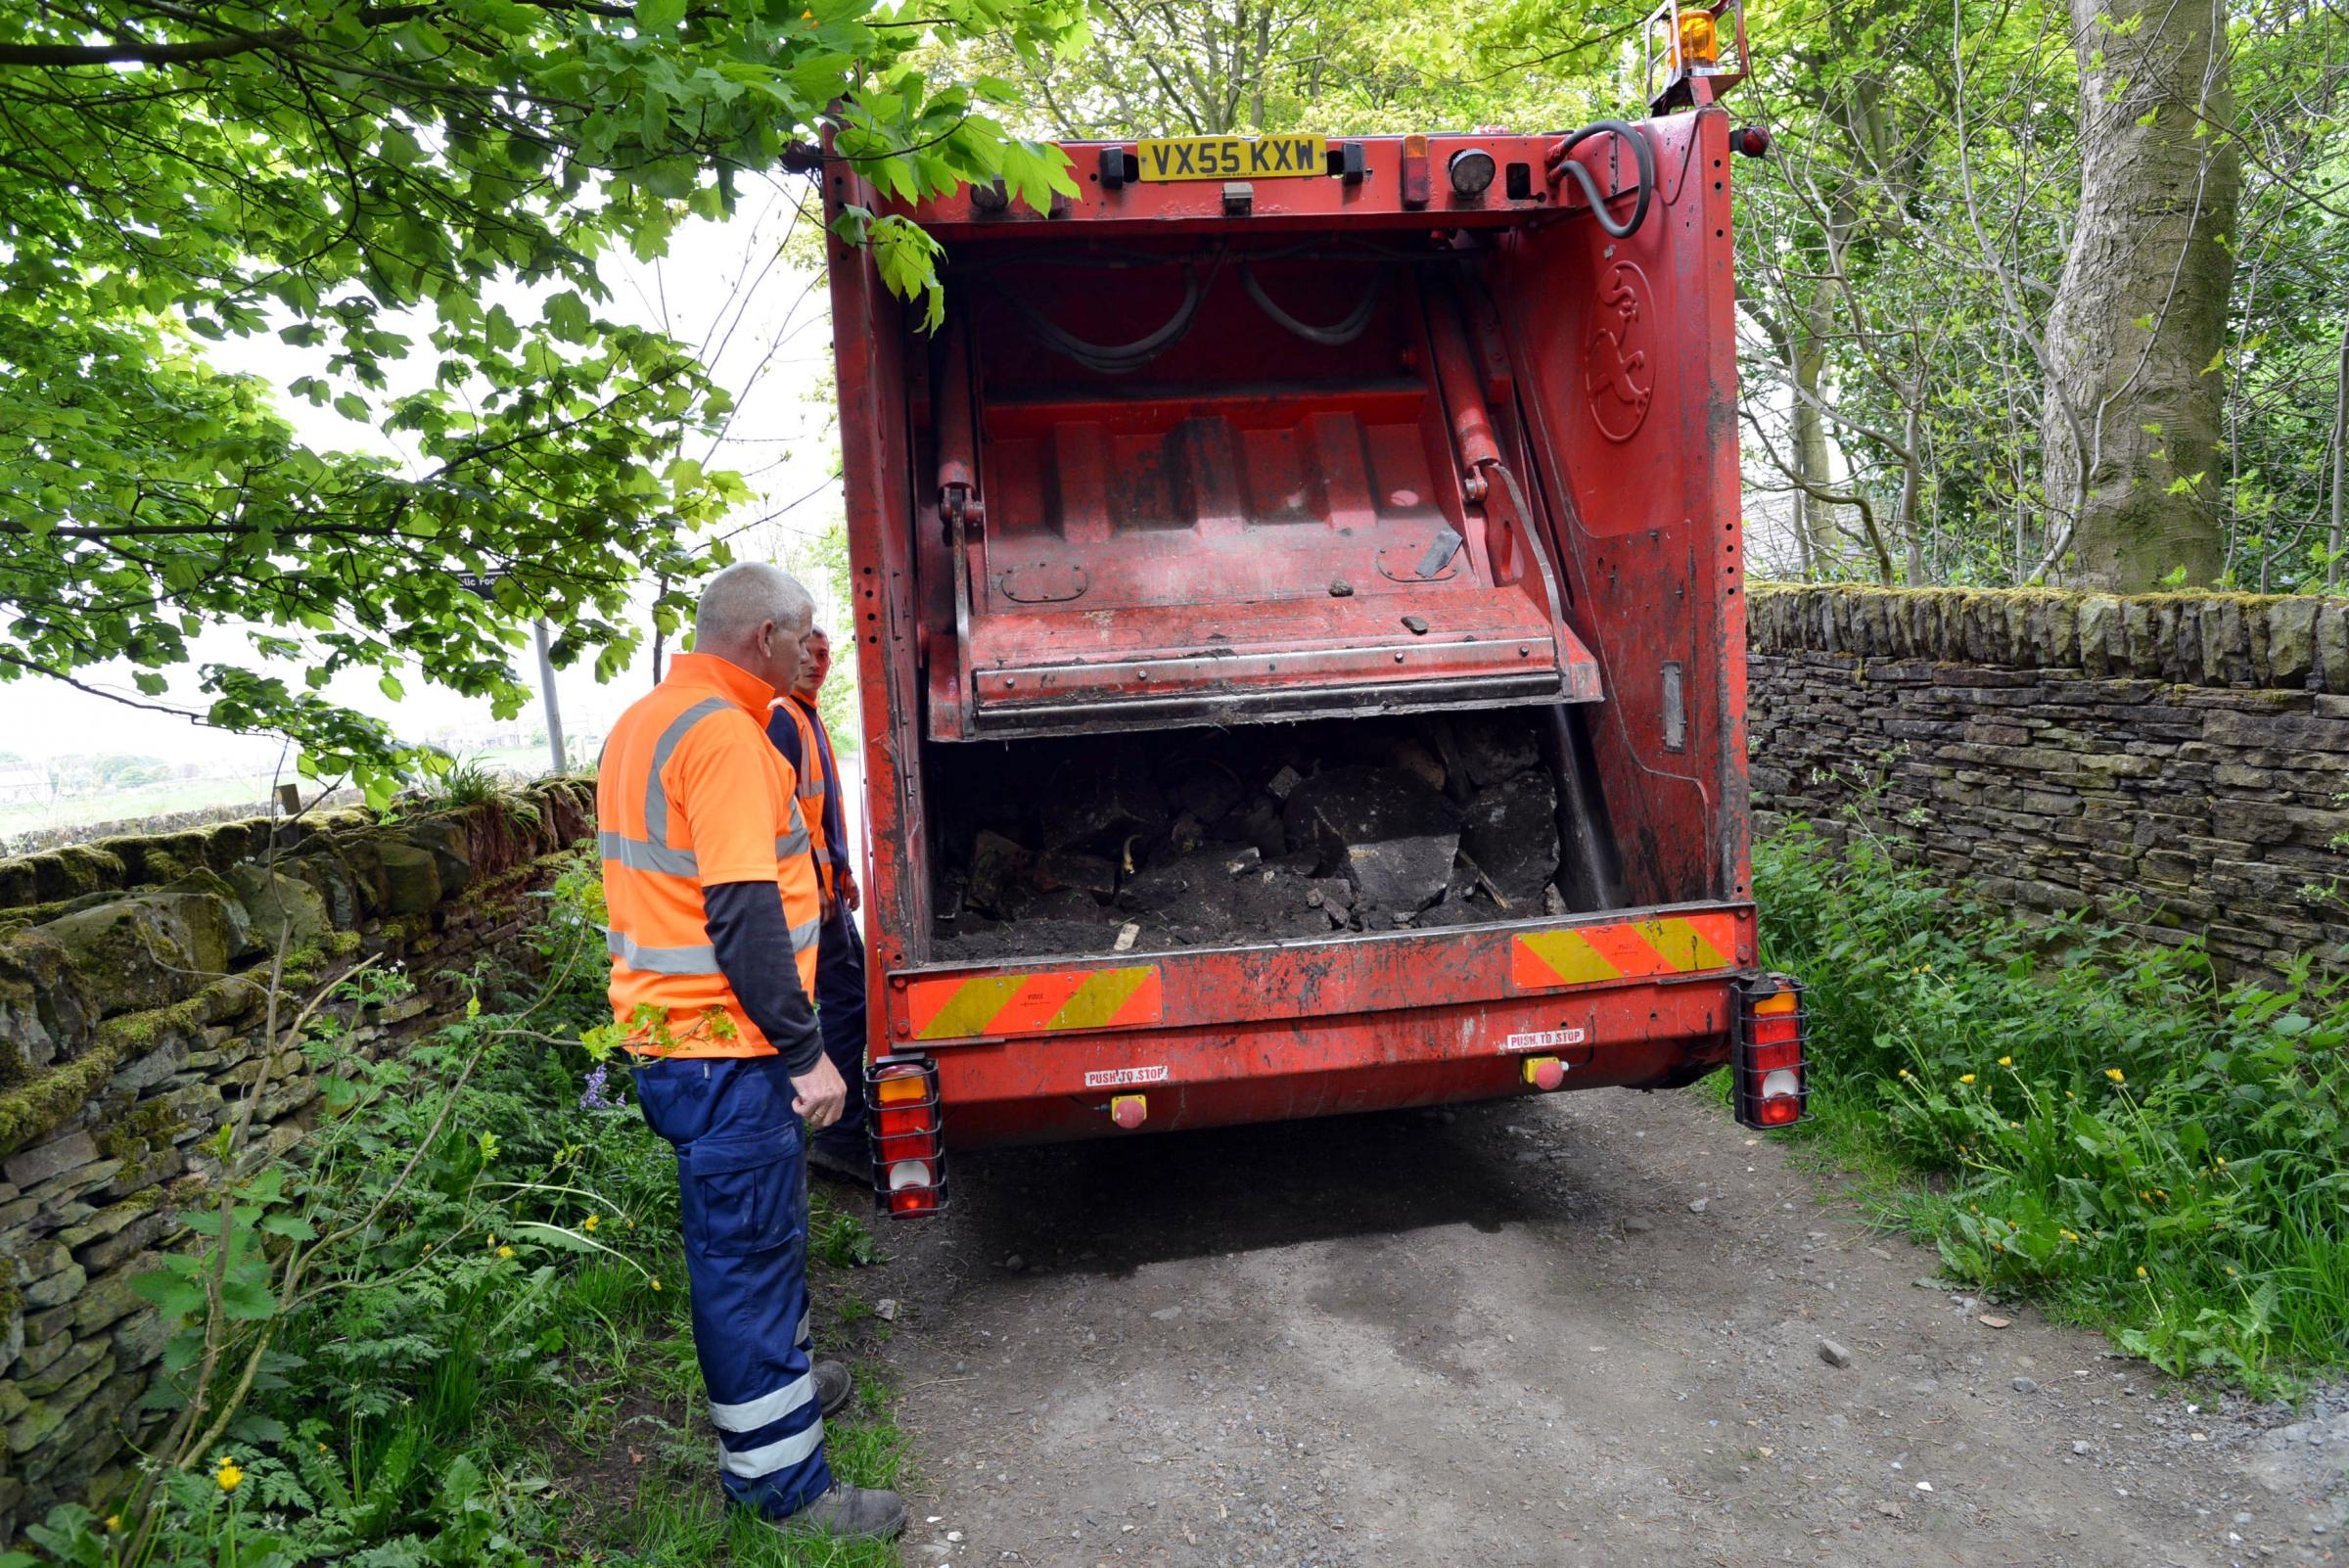 bradford council sofa removal blair 4 piece leather set loveseat chair and ottoman bricks concrete soil dumped in stocks lane telegraph outrage as flytipping blocks road clayton heights workers remove